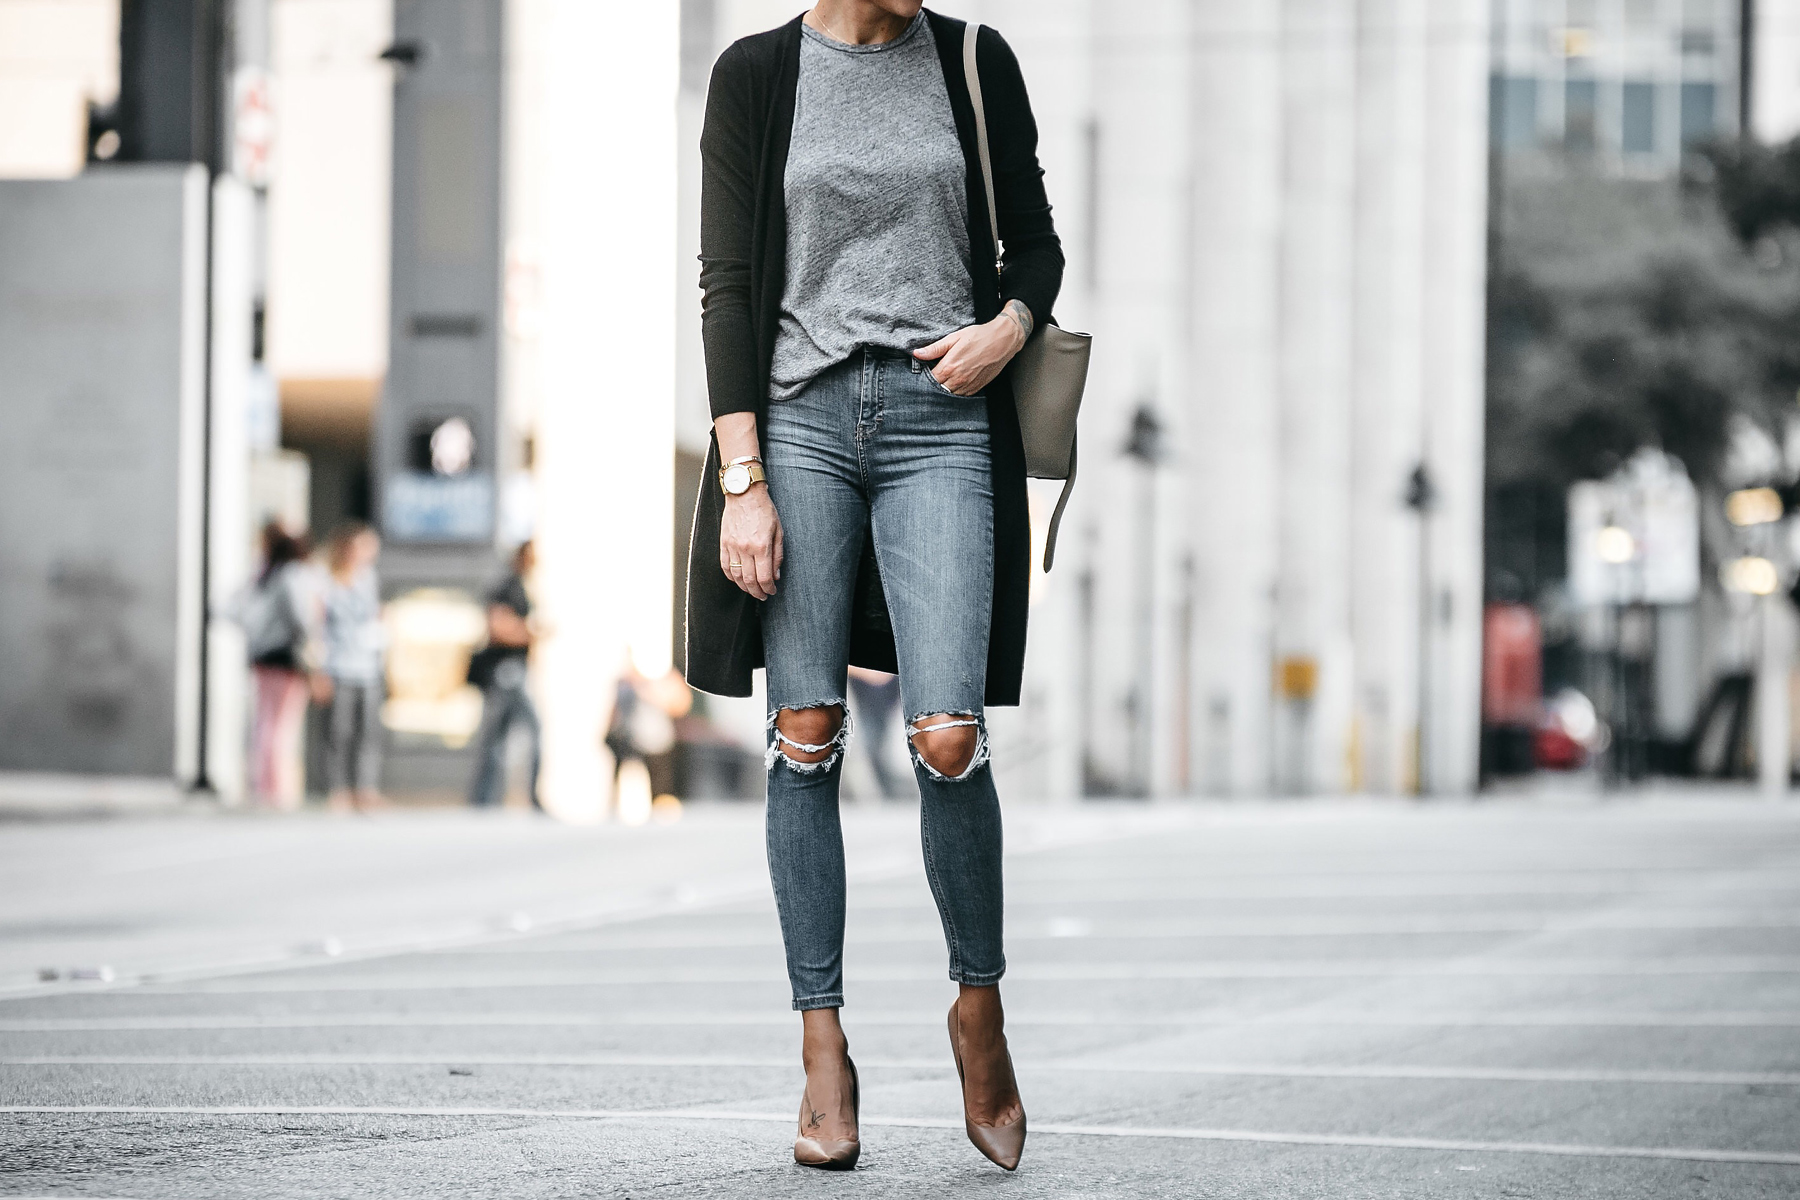 Long Black Cardigan Grey Tshirt Topshop Ripped Skinny Jeans Nude Pumps Outfit Fashion Jackson Dallas Blogger Fashion Blogger Street Style